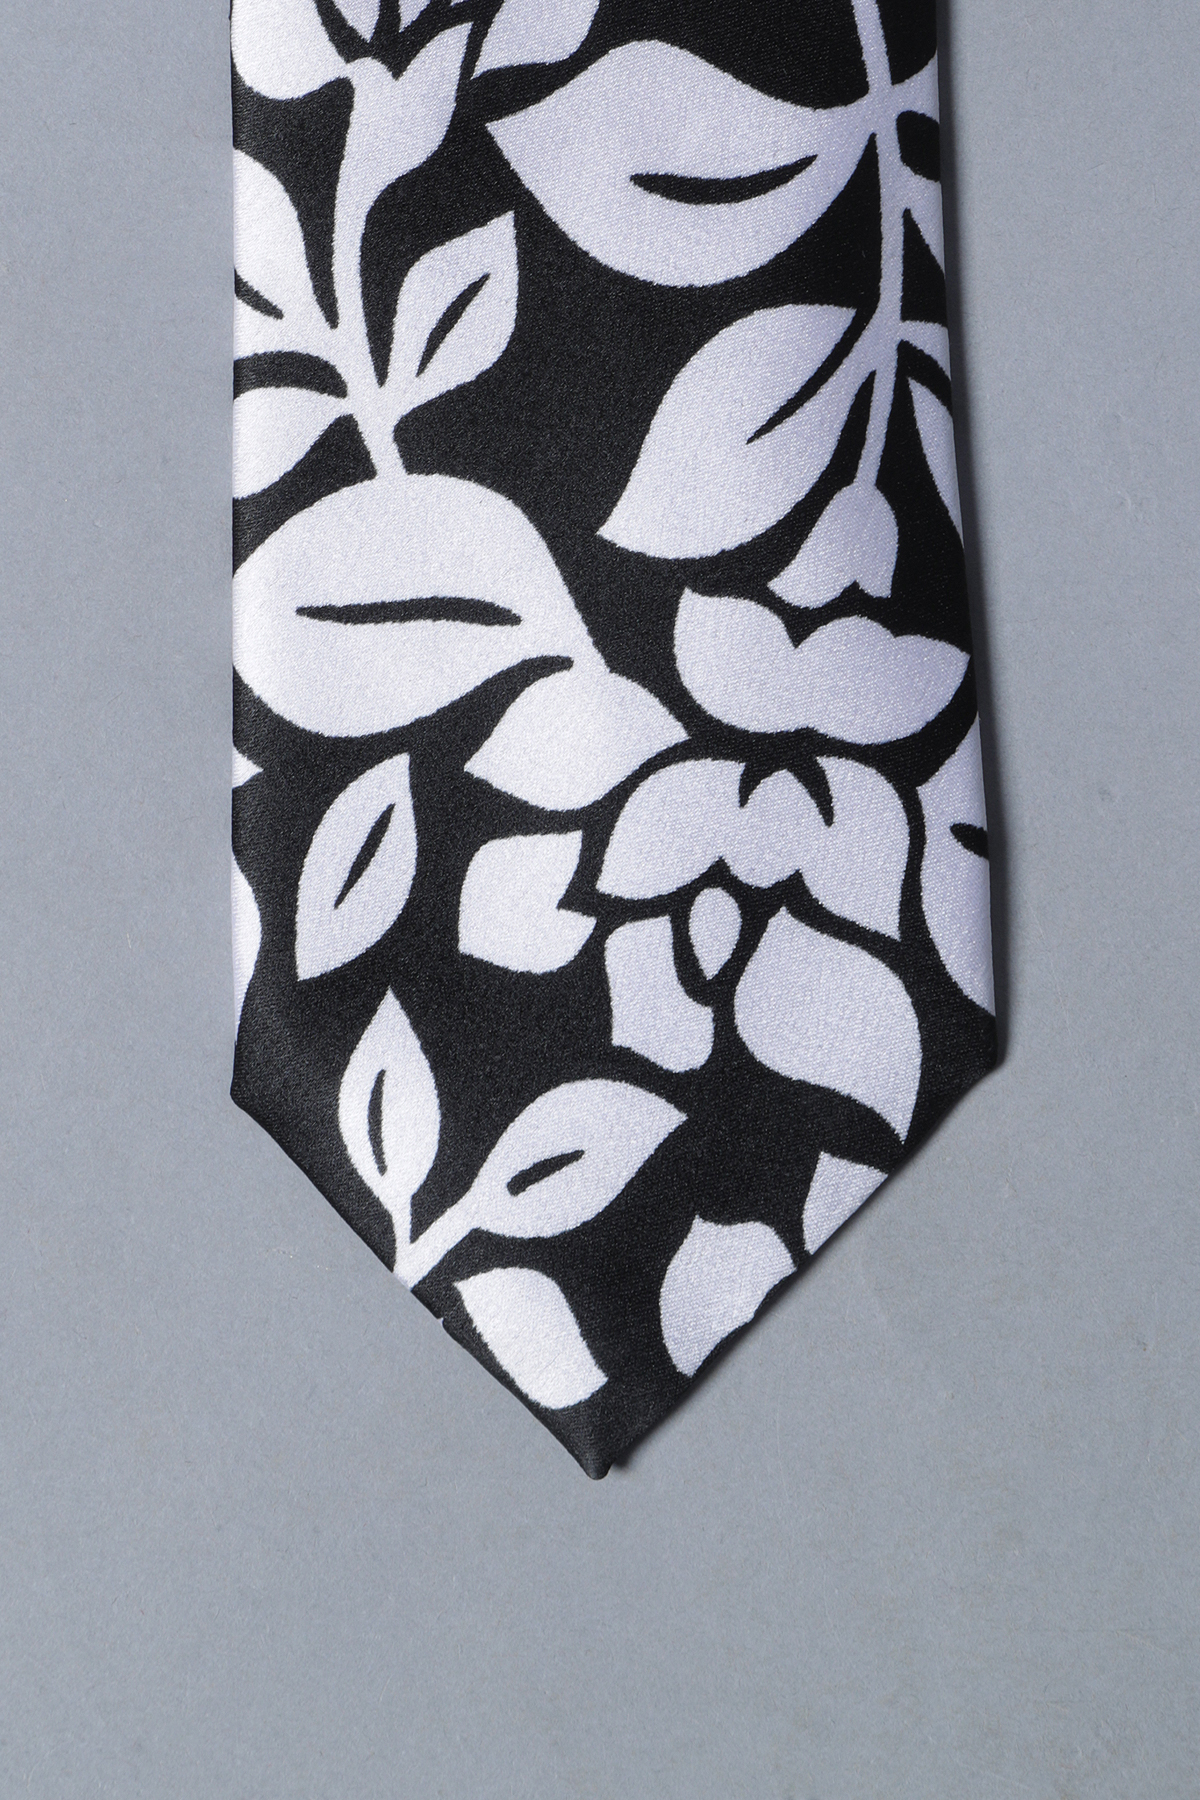 Black jack tie & pocket square